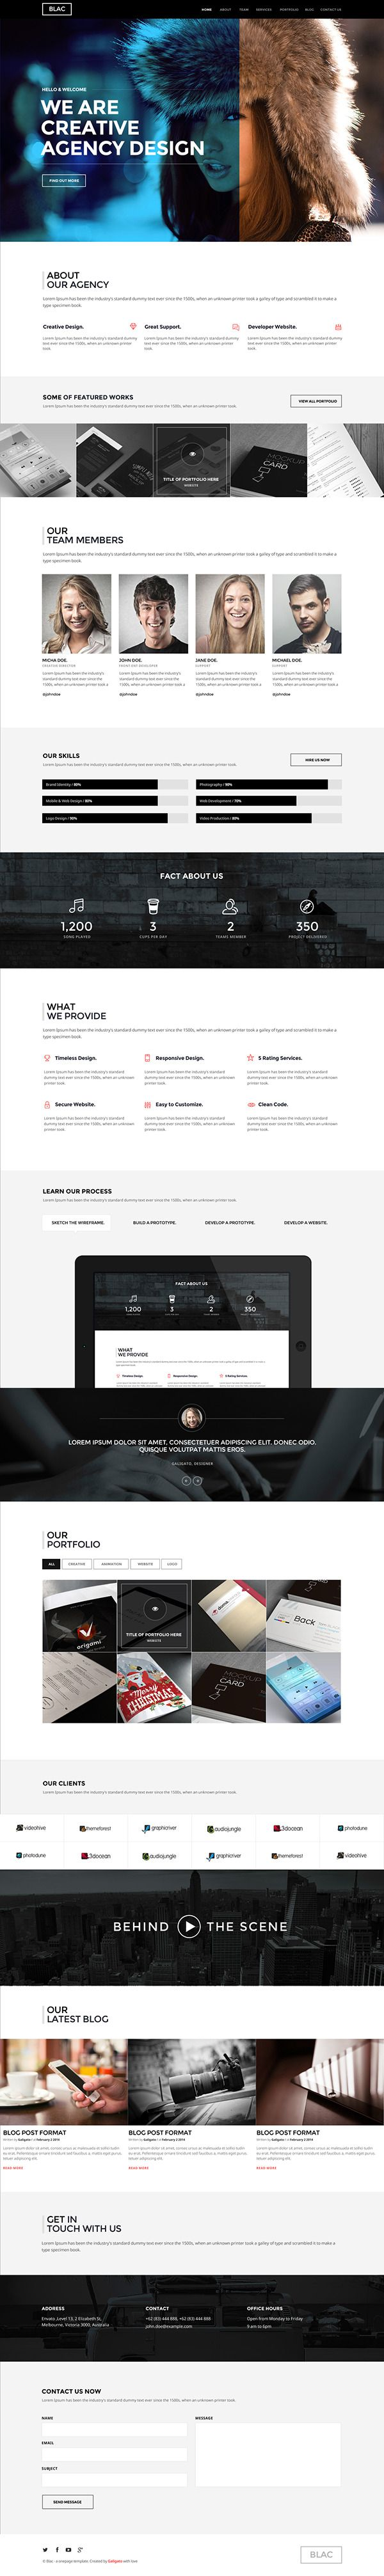 Blac - Ultimate Simple One Page PSD Template on Web Design Served